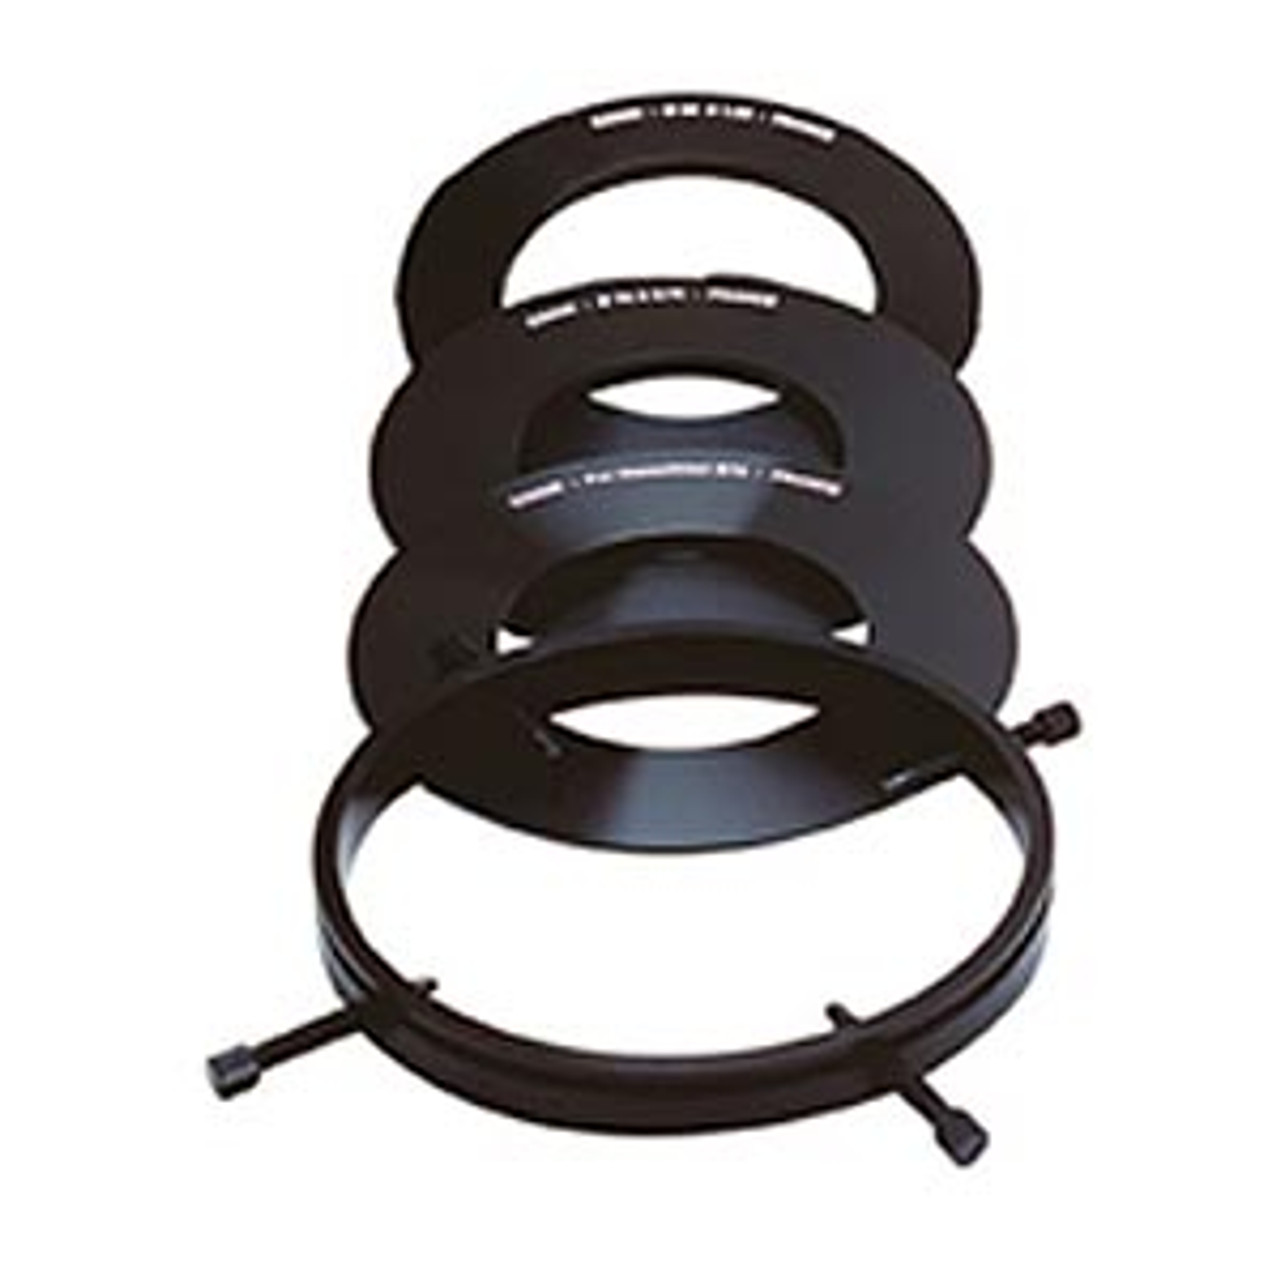 Cokin P482 82mm Adapter Ring